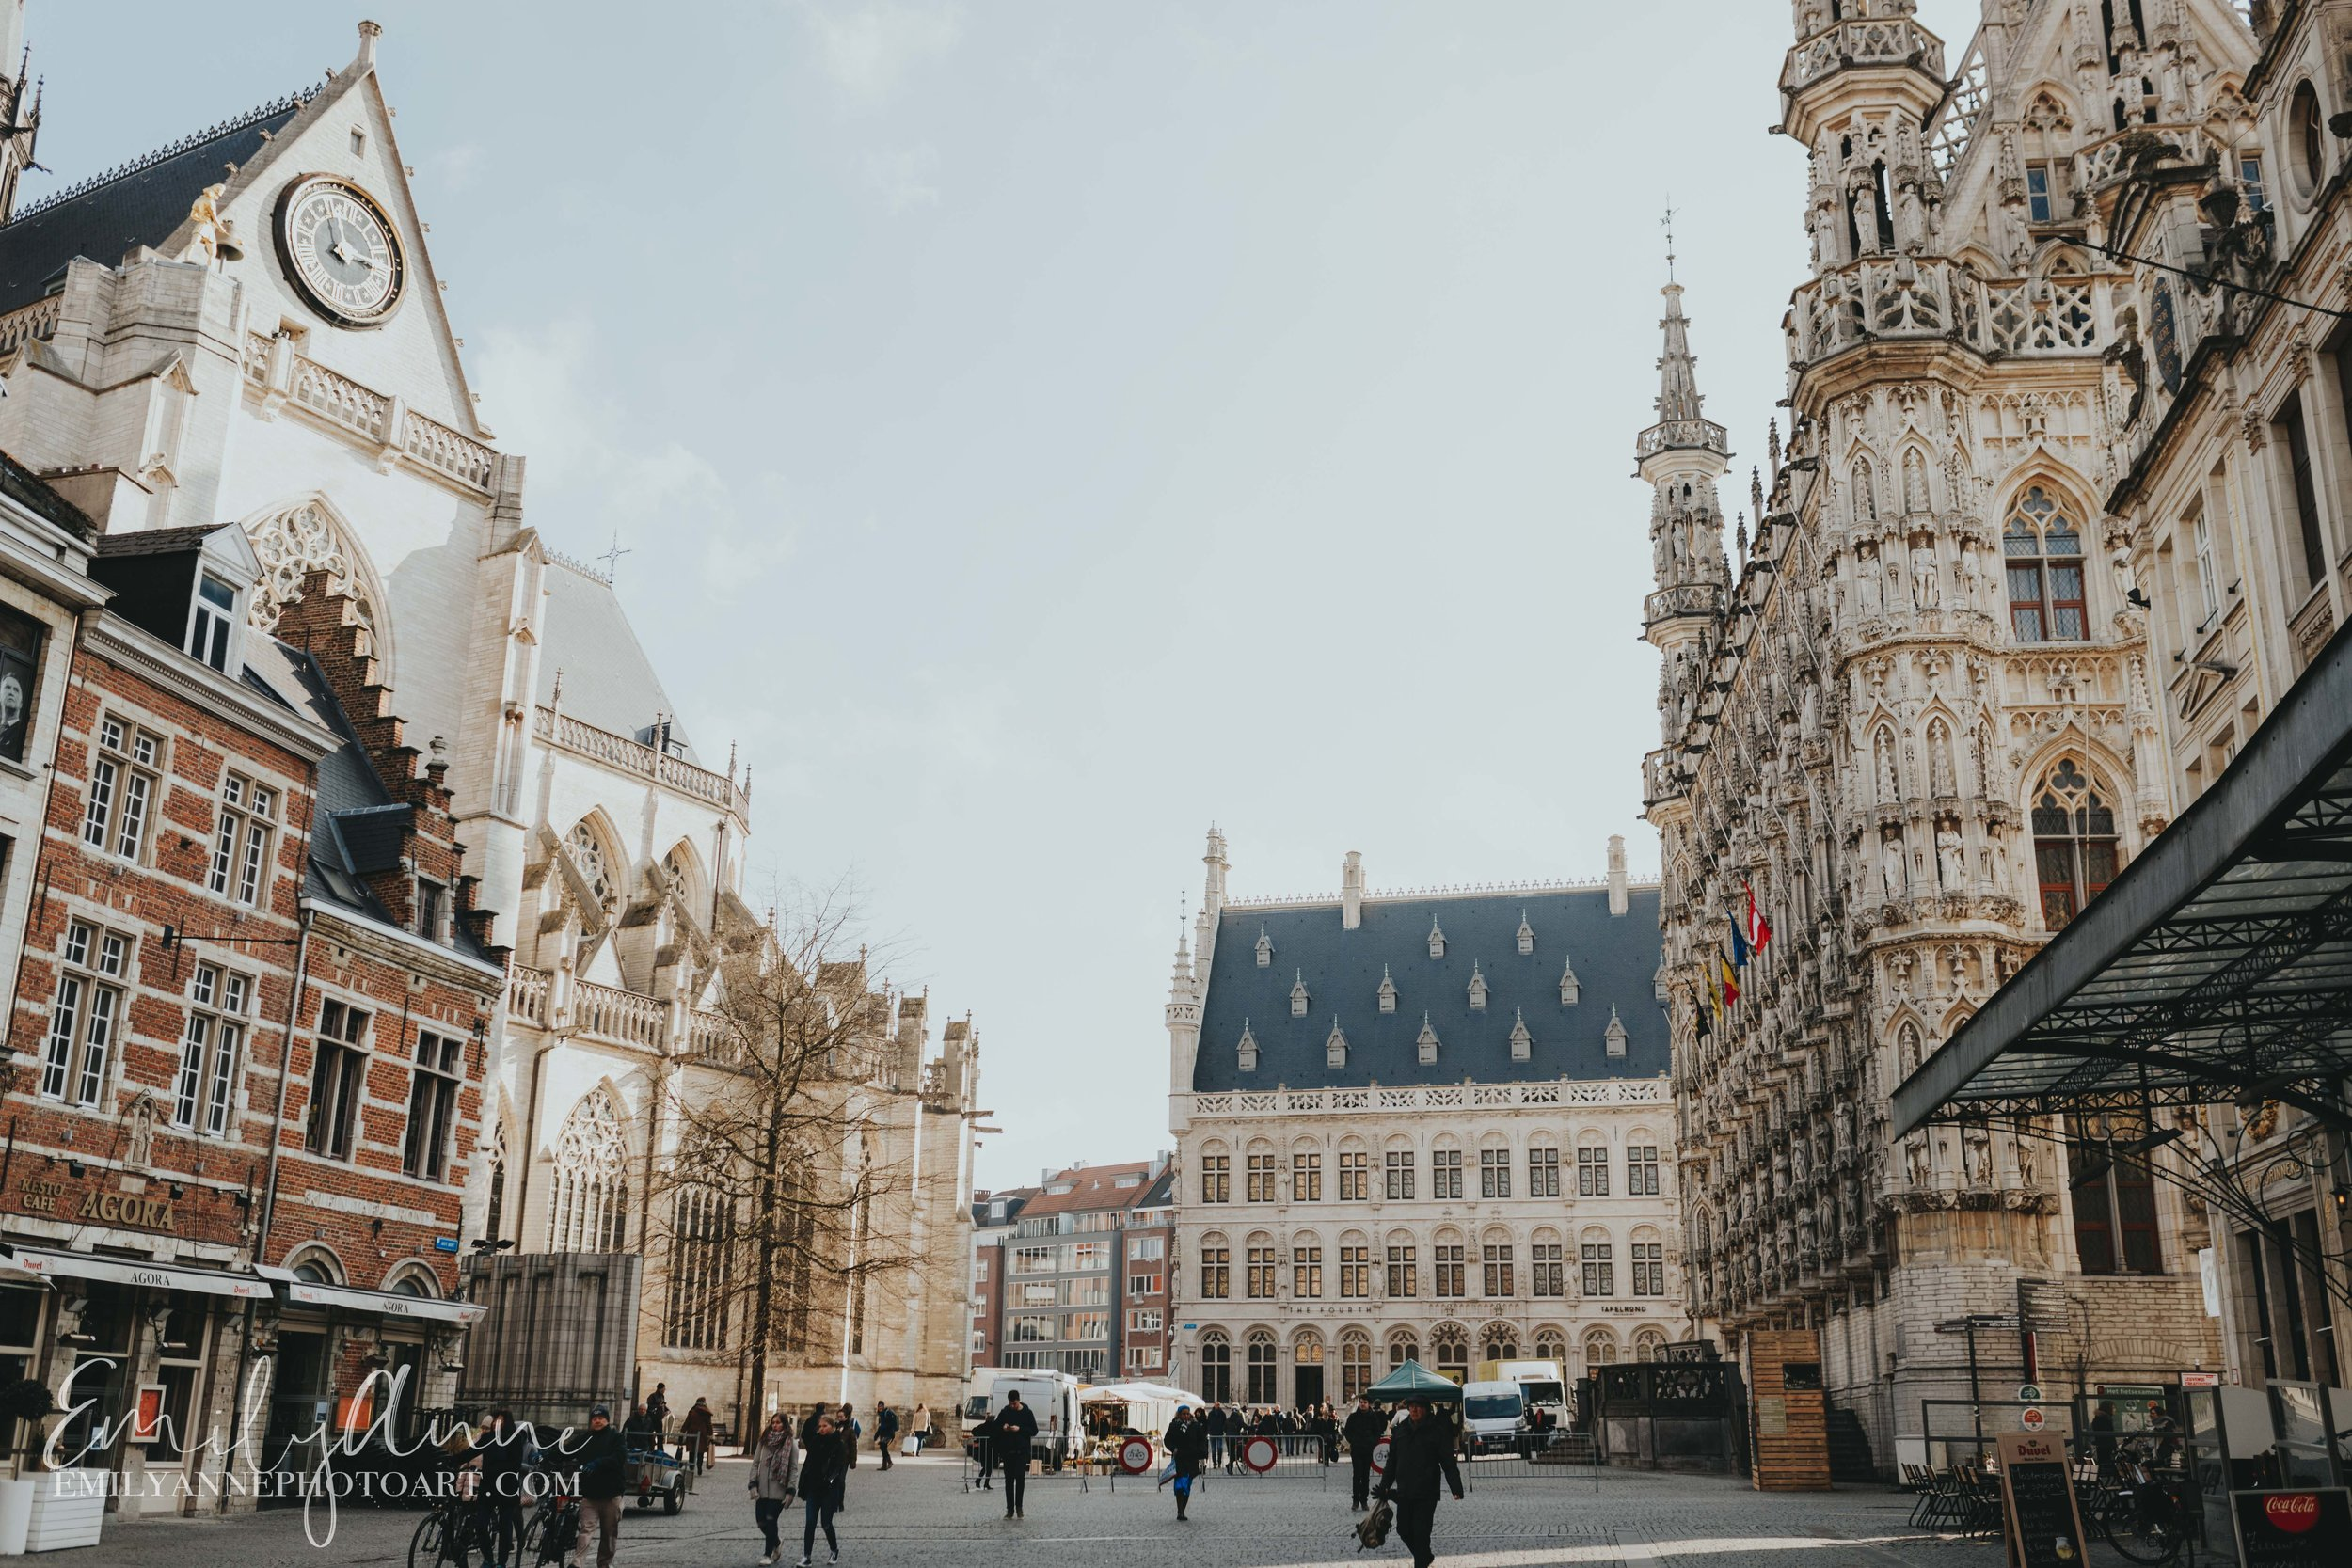 gorgeous town city hall of Leuven by top Barcelona Leuven Wedding Portrait photographer Emily Anne photo art (photography)